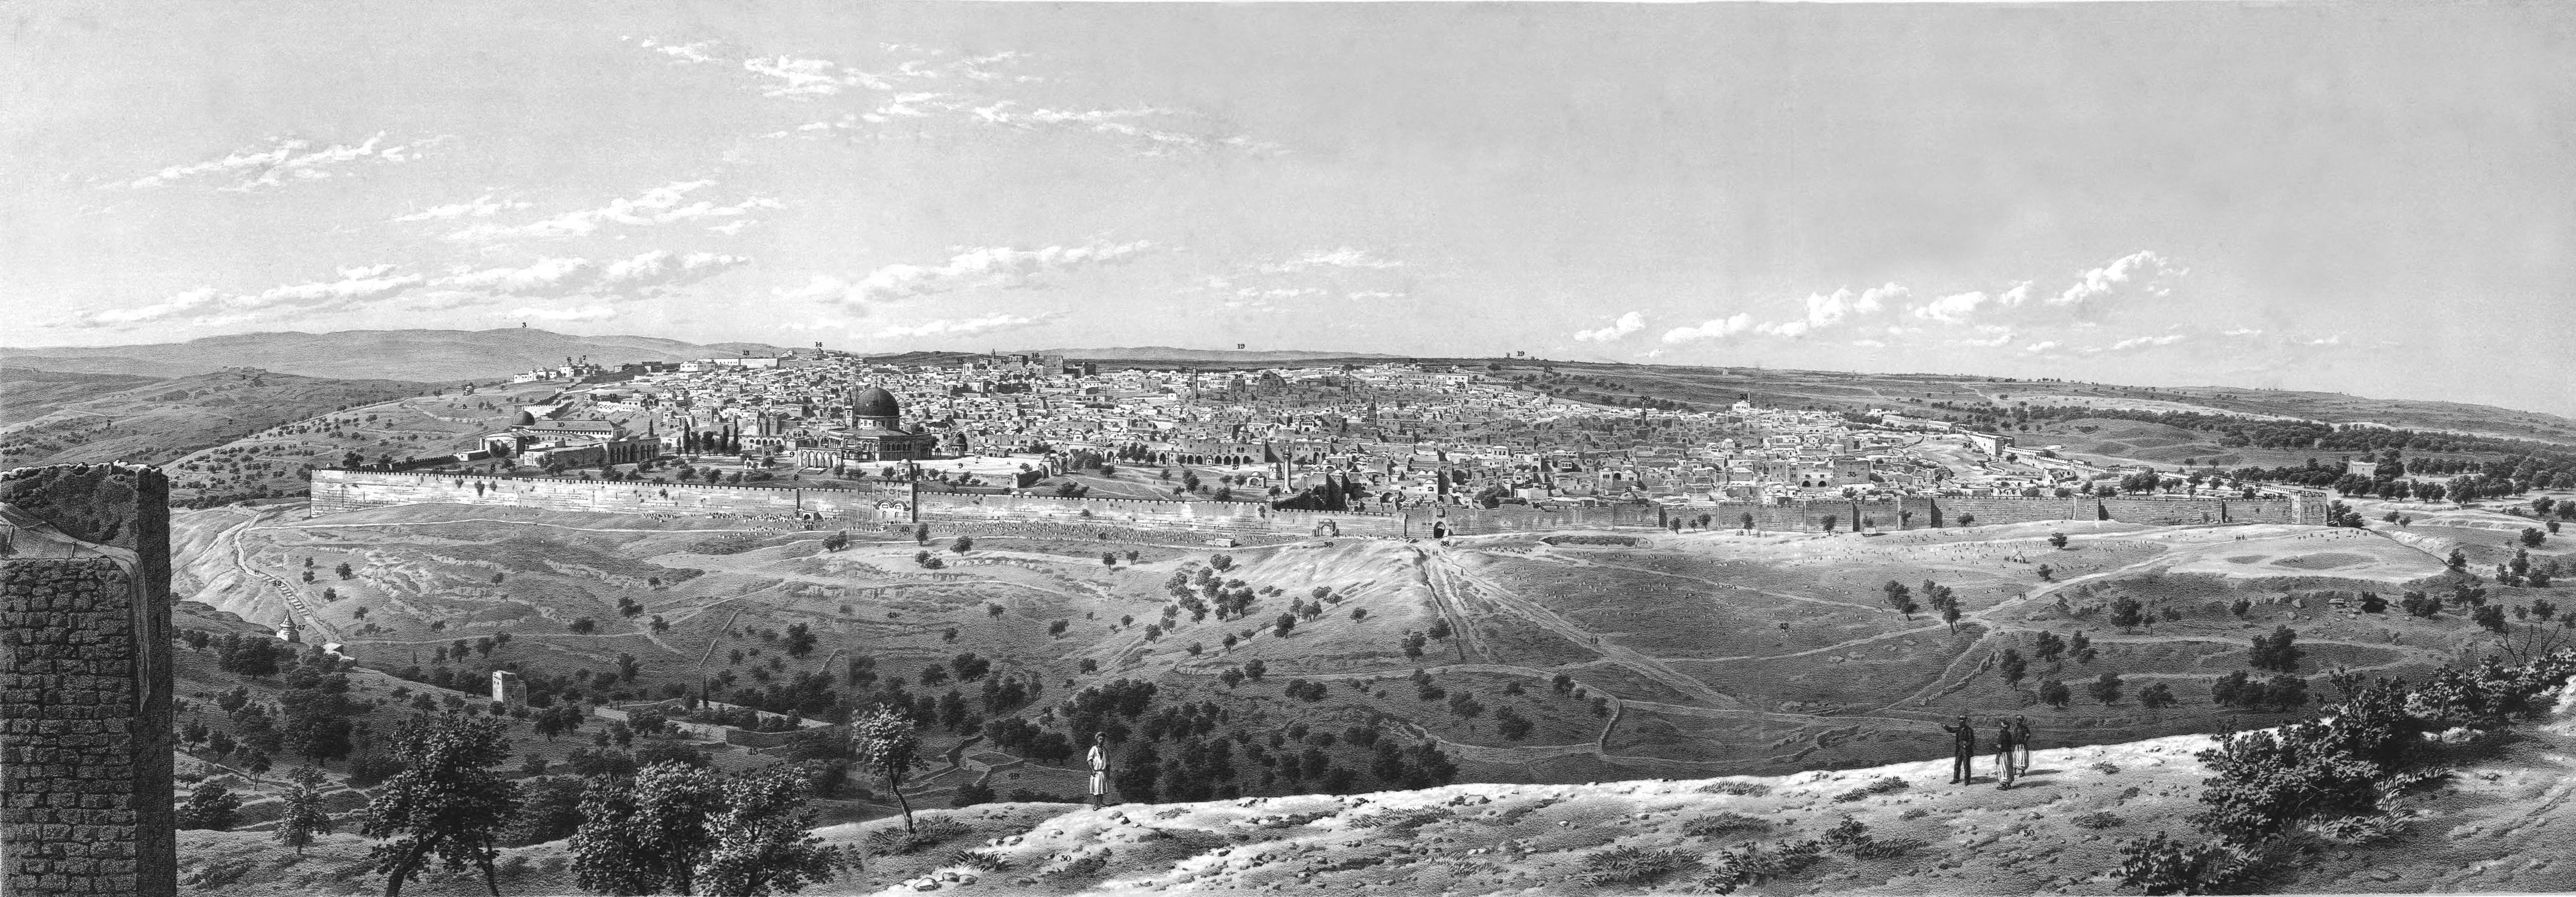 The project gutenberg ebook of jerusalem explored by ermete pierotti illustration panorama of jerusalem seen from the mount of olives fandeluxe Ebook collections